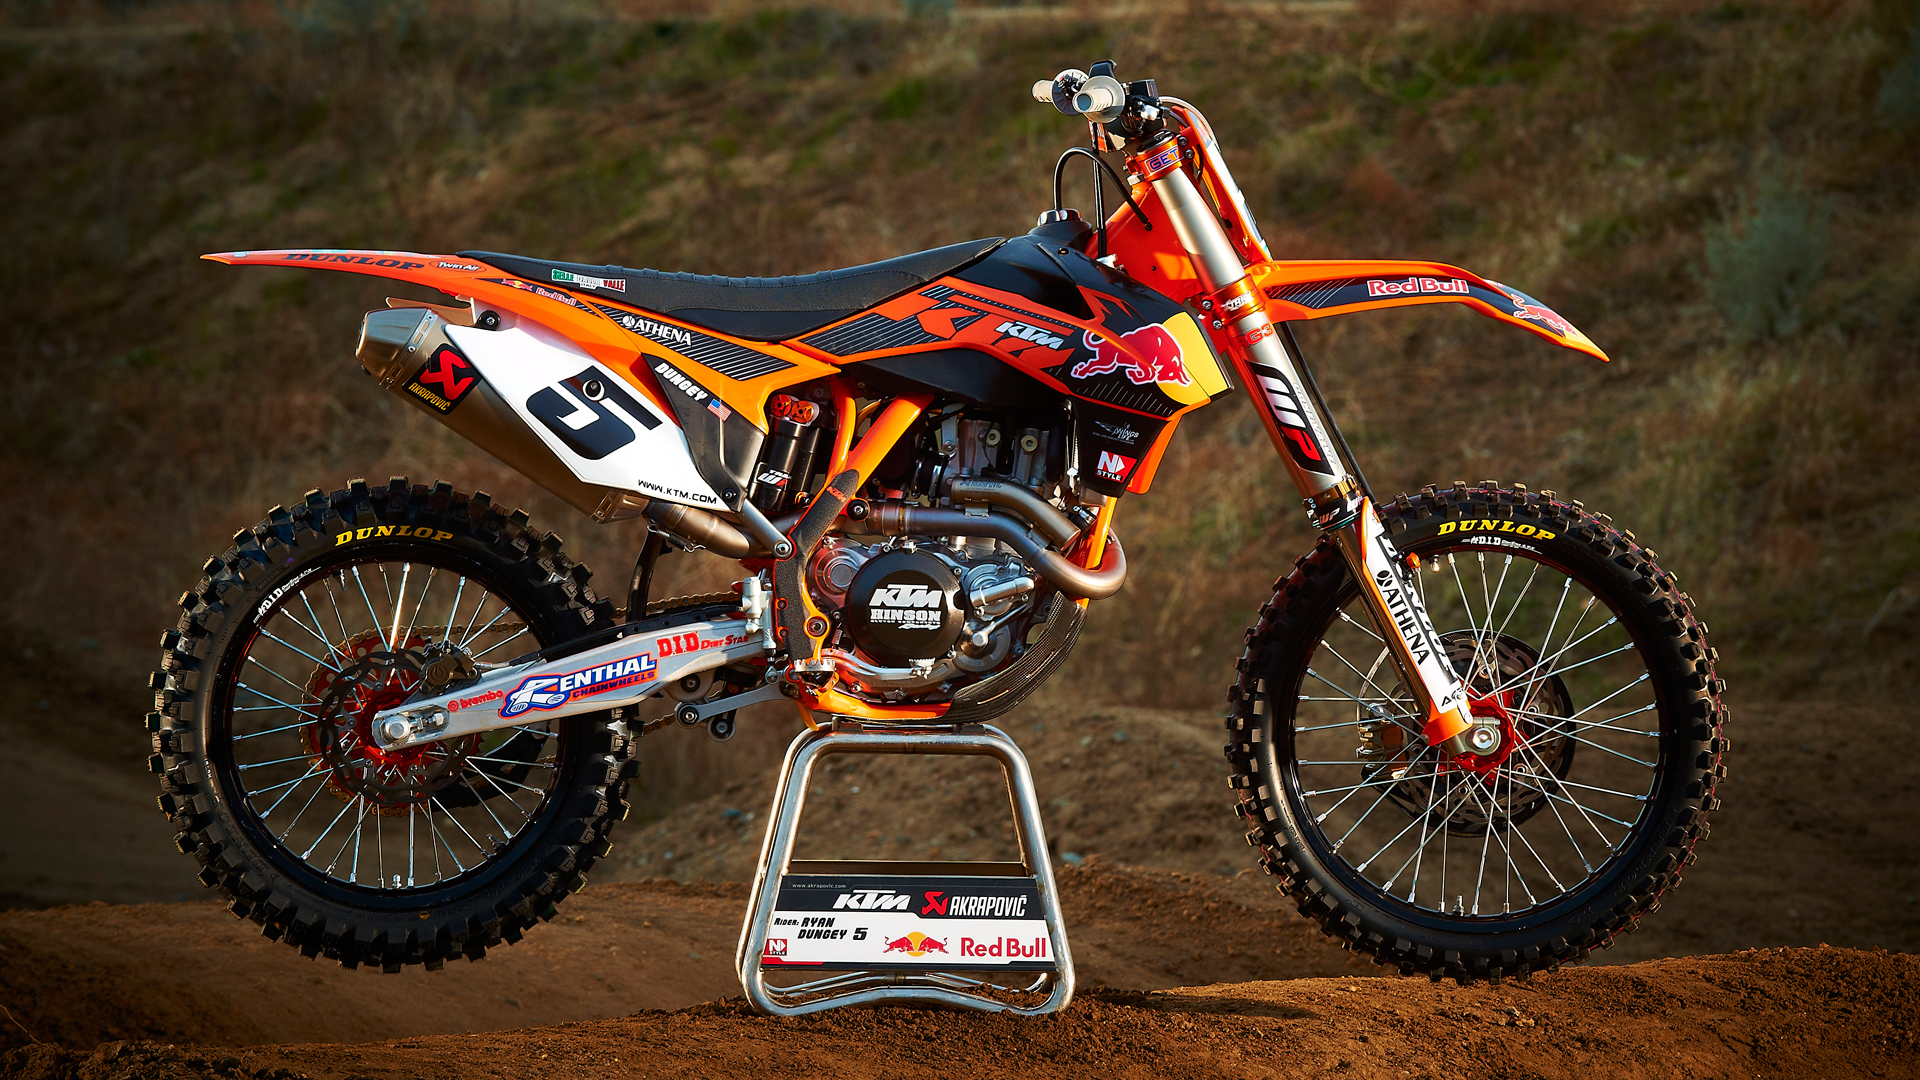 Wallpapers Motocross Dirt Bike Picture Pictures to pin on 1920x1080